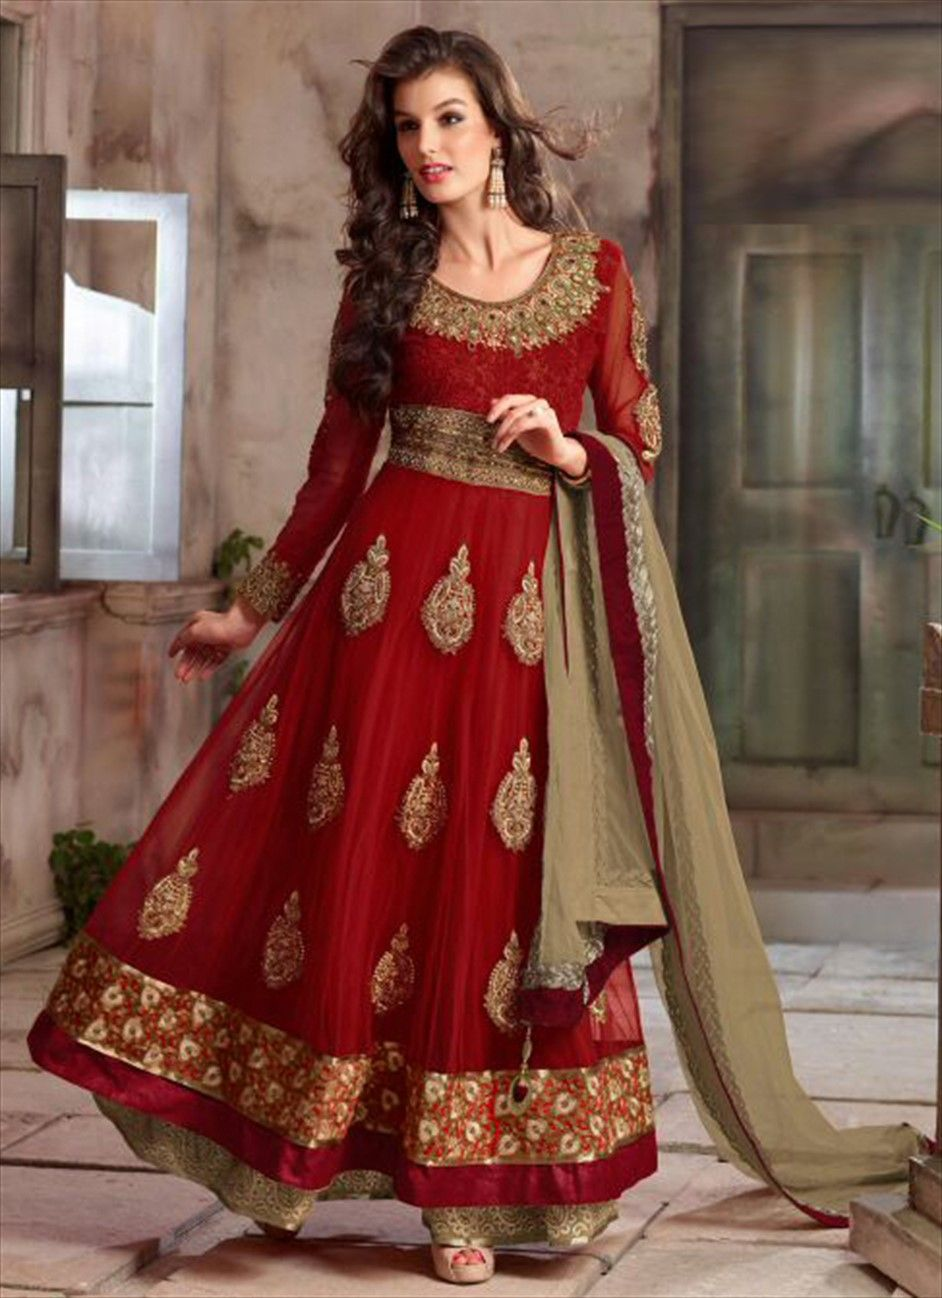 c719a3e8d4 Faux Georgette Salwar Kameez in Red and Maroon with Embroidered work ...